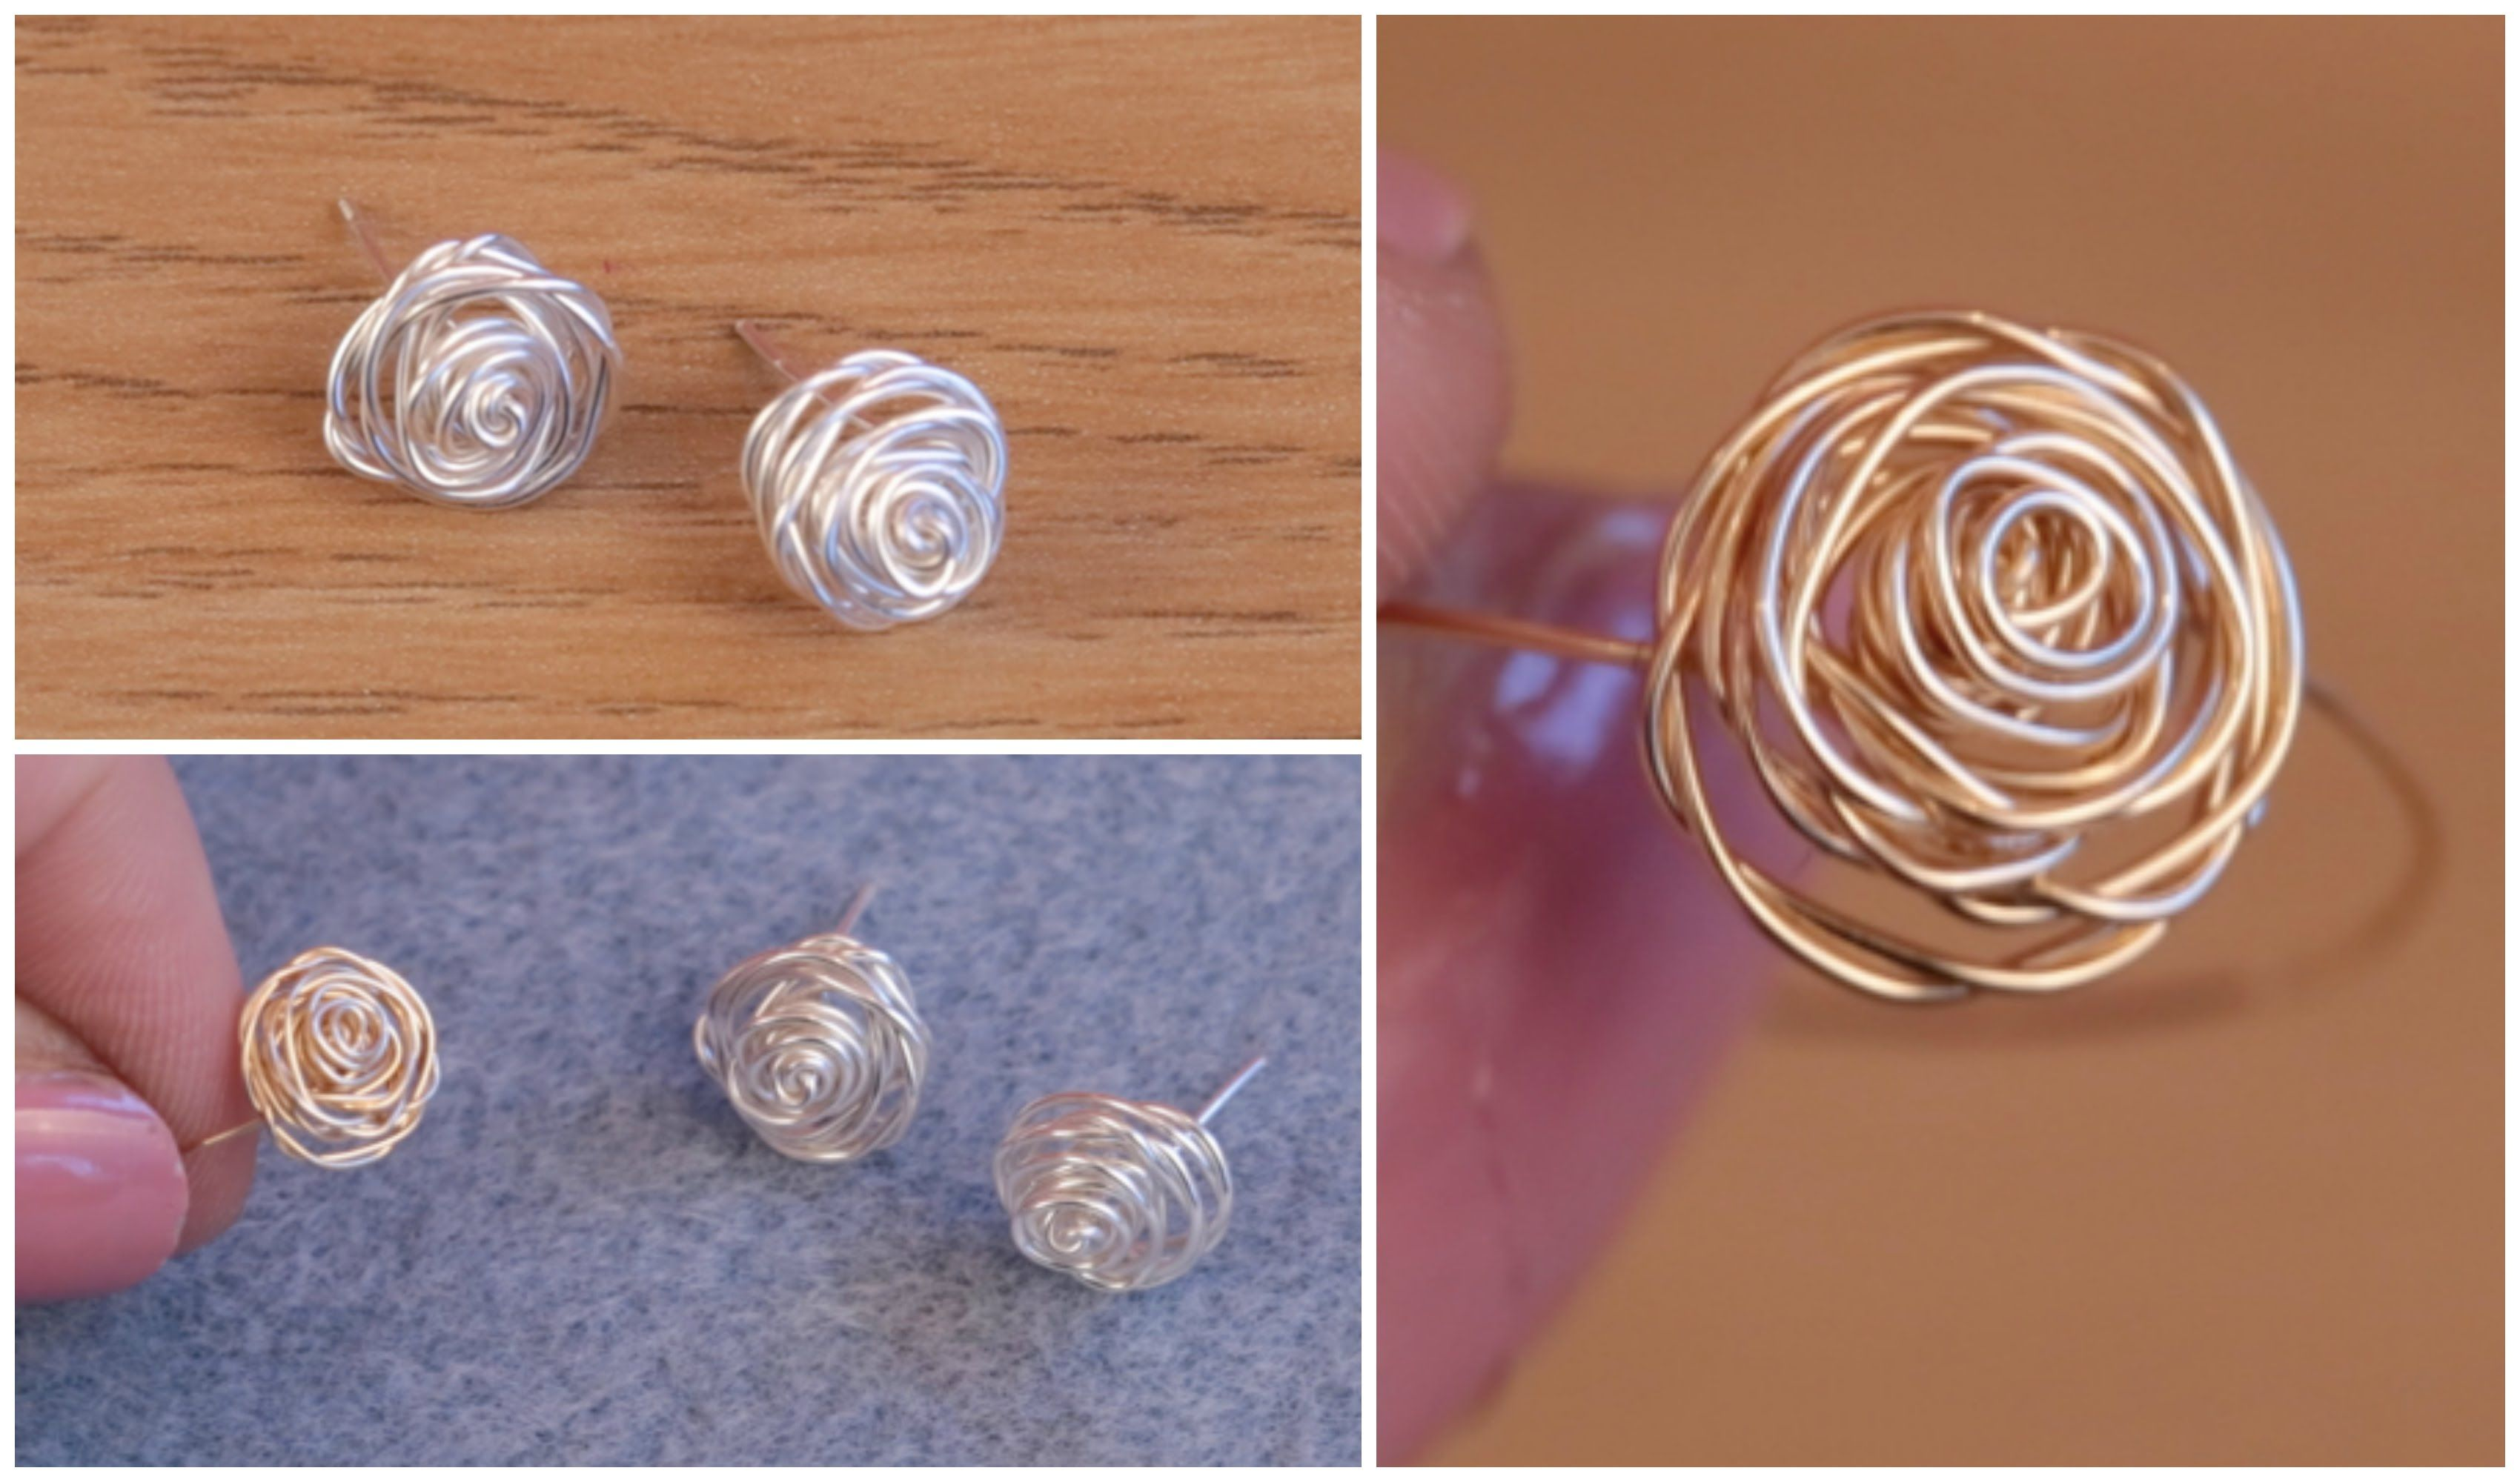 Diy Make Silver Stud Earrings Rose Jewellery With Jessica